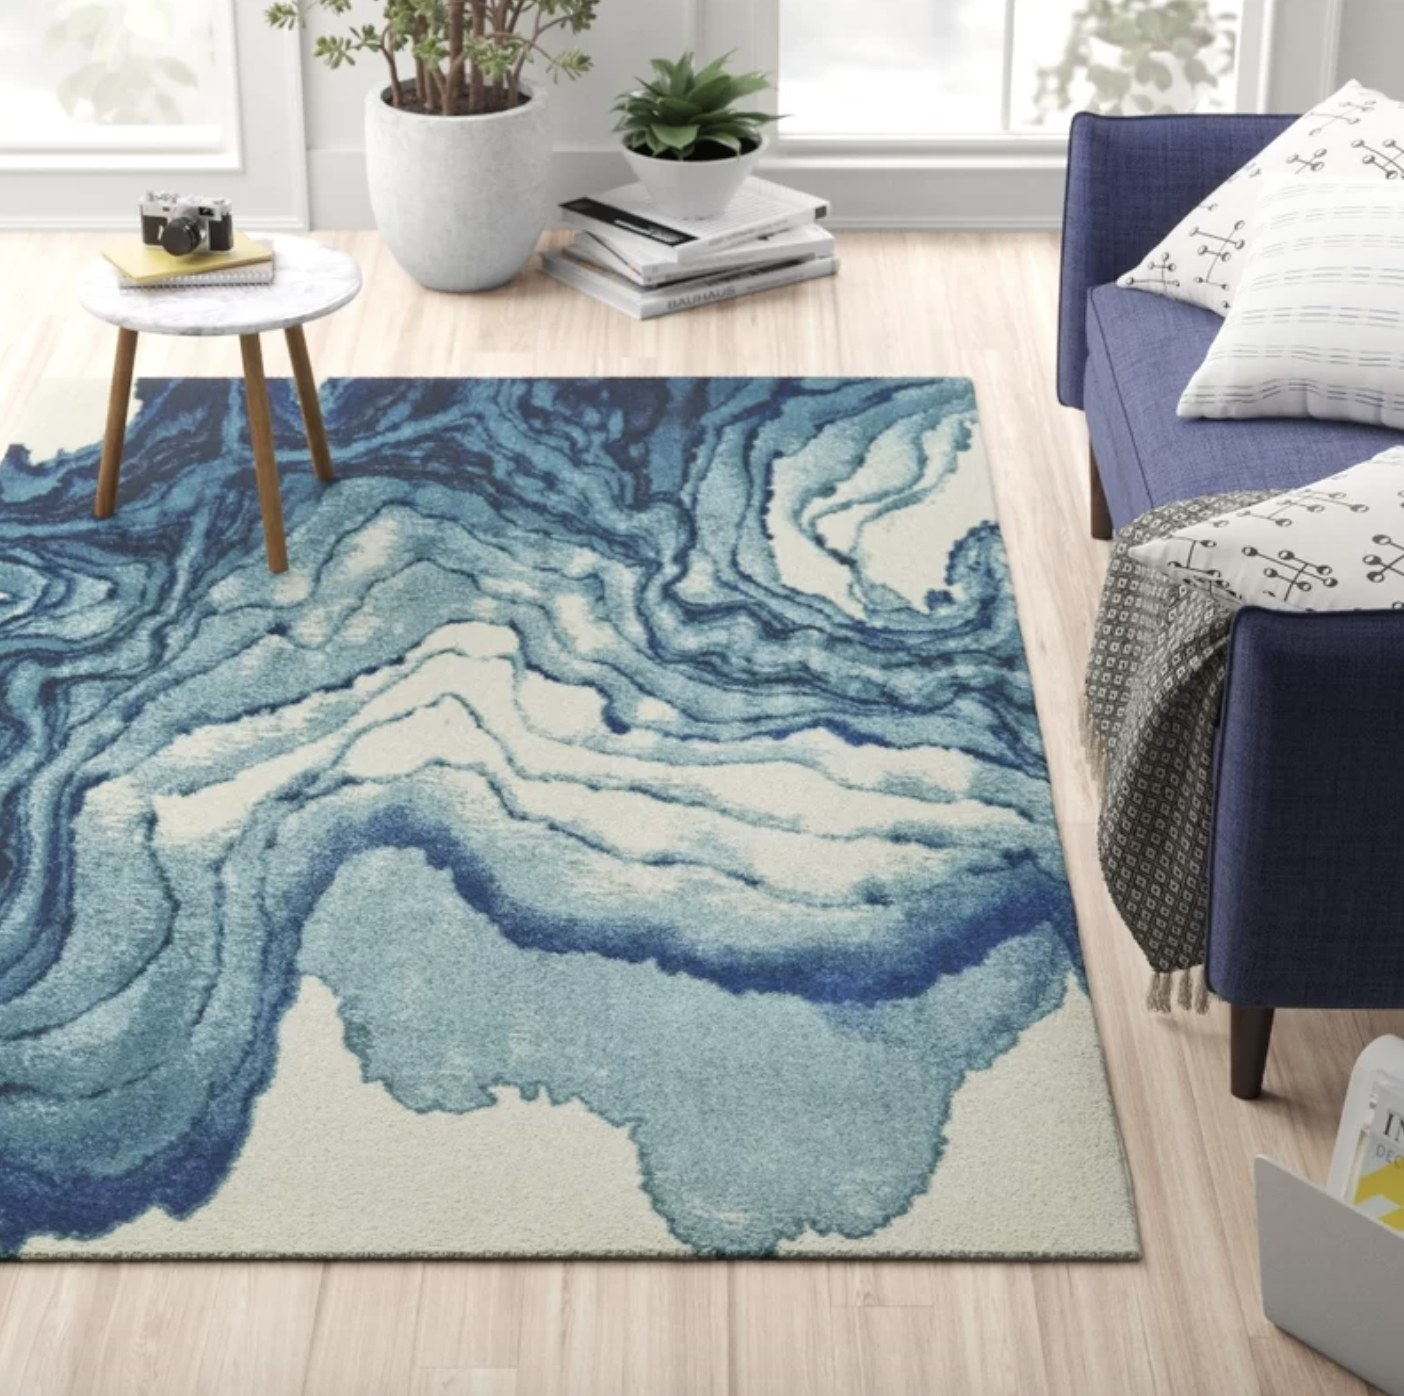 the rug with a blue watercolor design in a living room setting